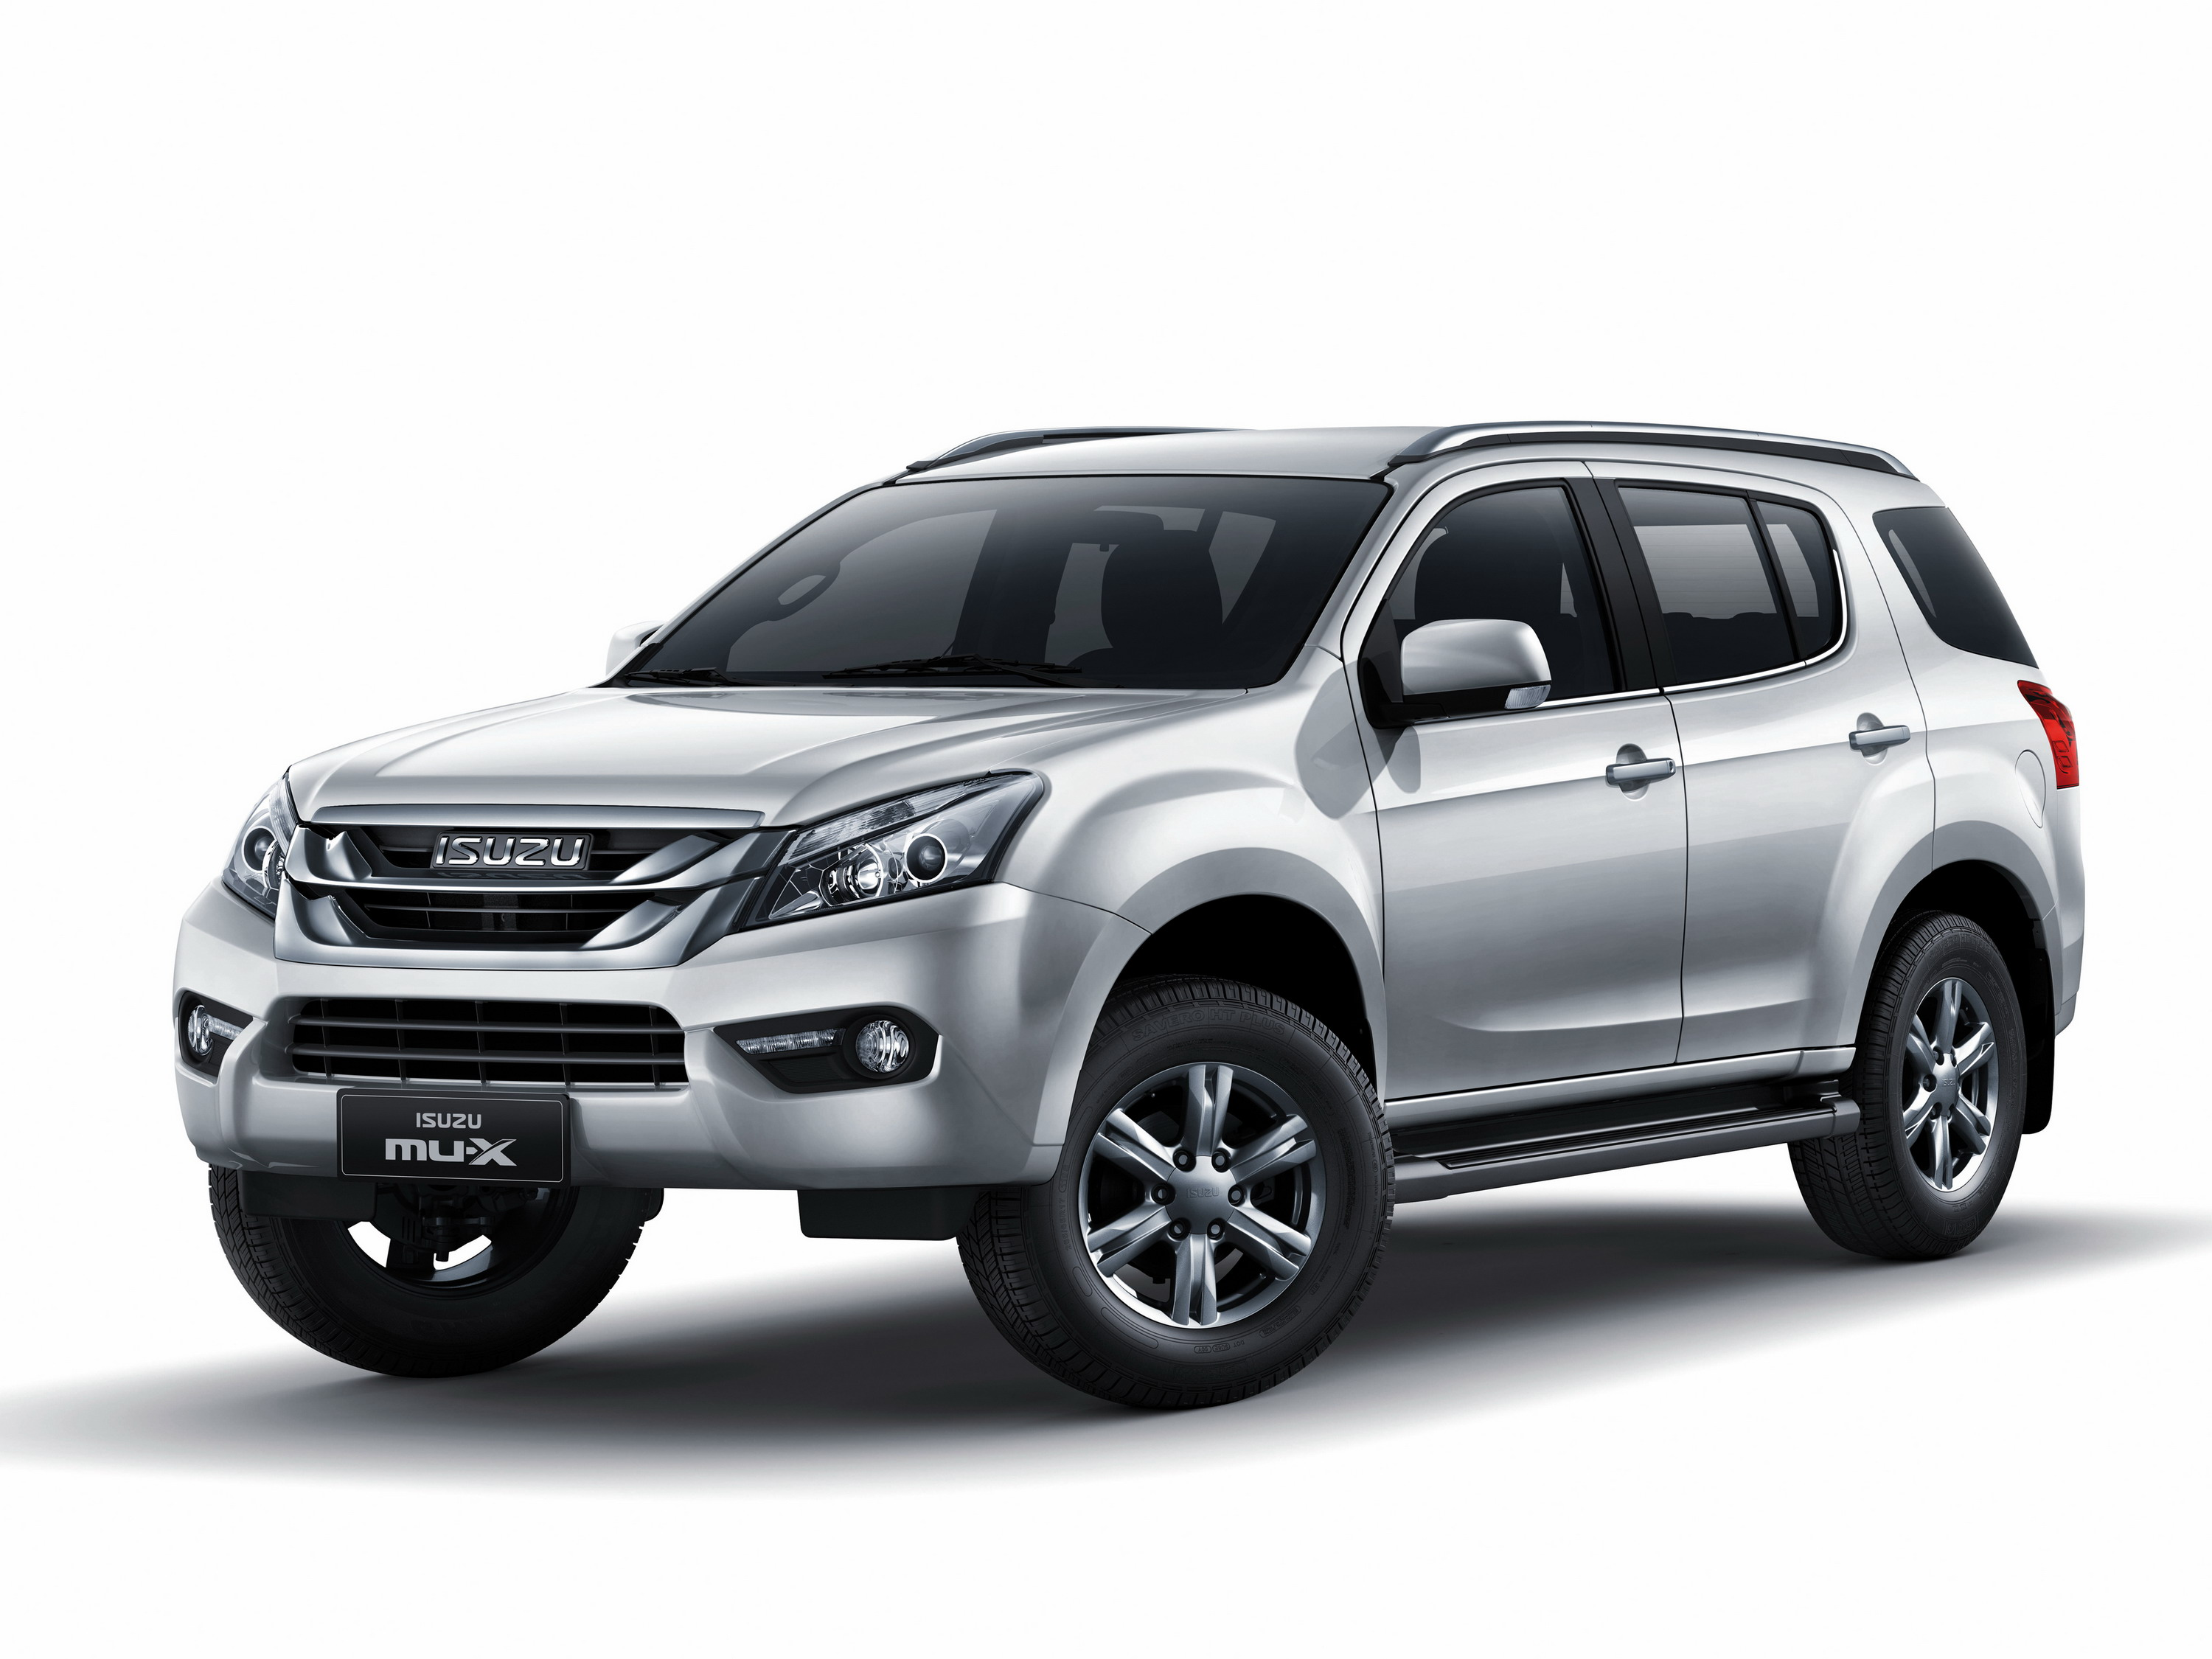 2018 Isuzu Concept X Top Speed Accessories Mux